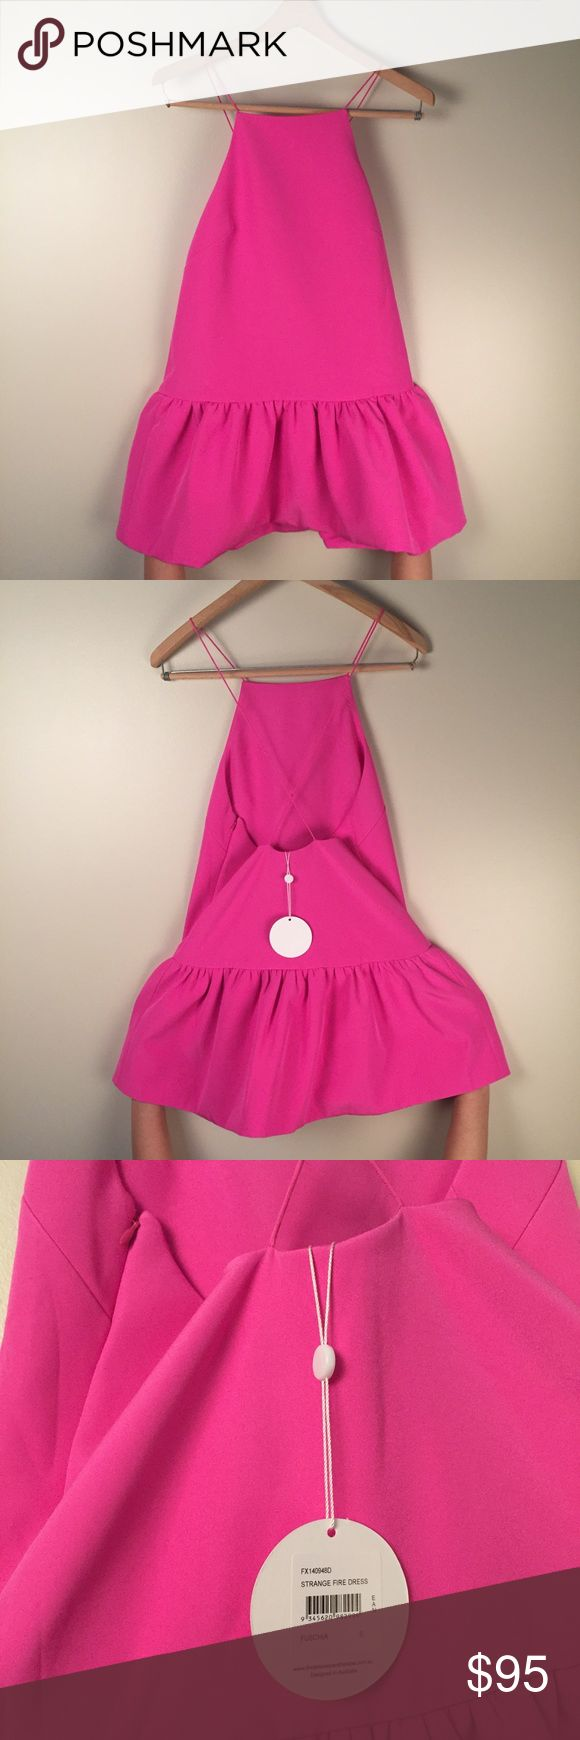 Finders Keepers Strange Fire Fuchsia dress. S. Poly blend shirred drop waist skirt. Adorable summer dress, NWT! Finders Keepers Dresses Backless